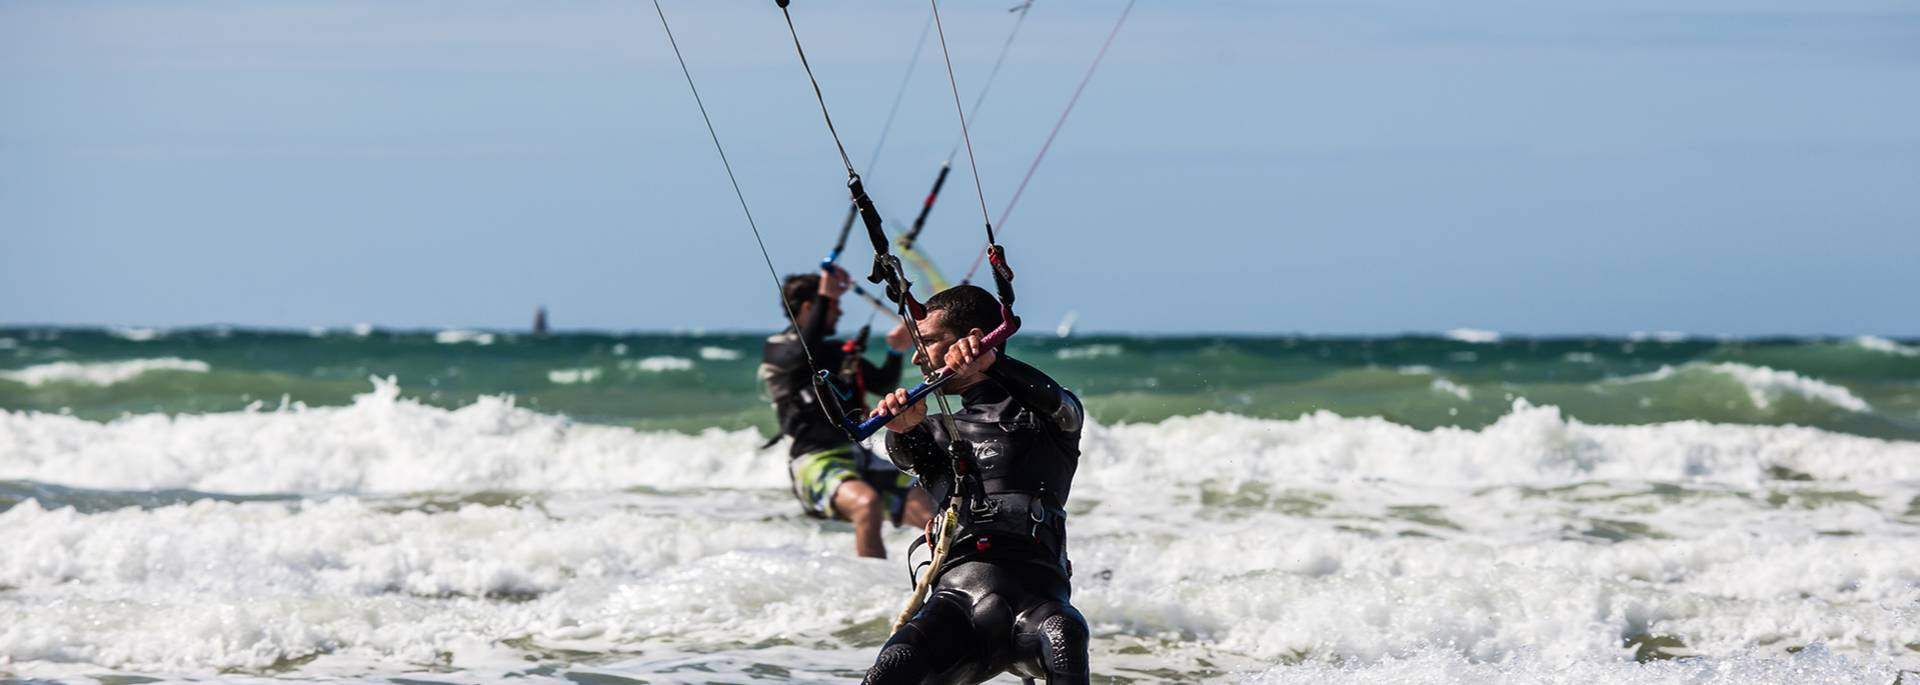 Session de kitesurf